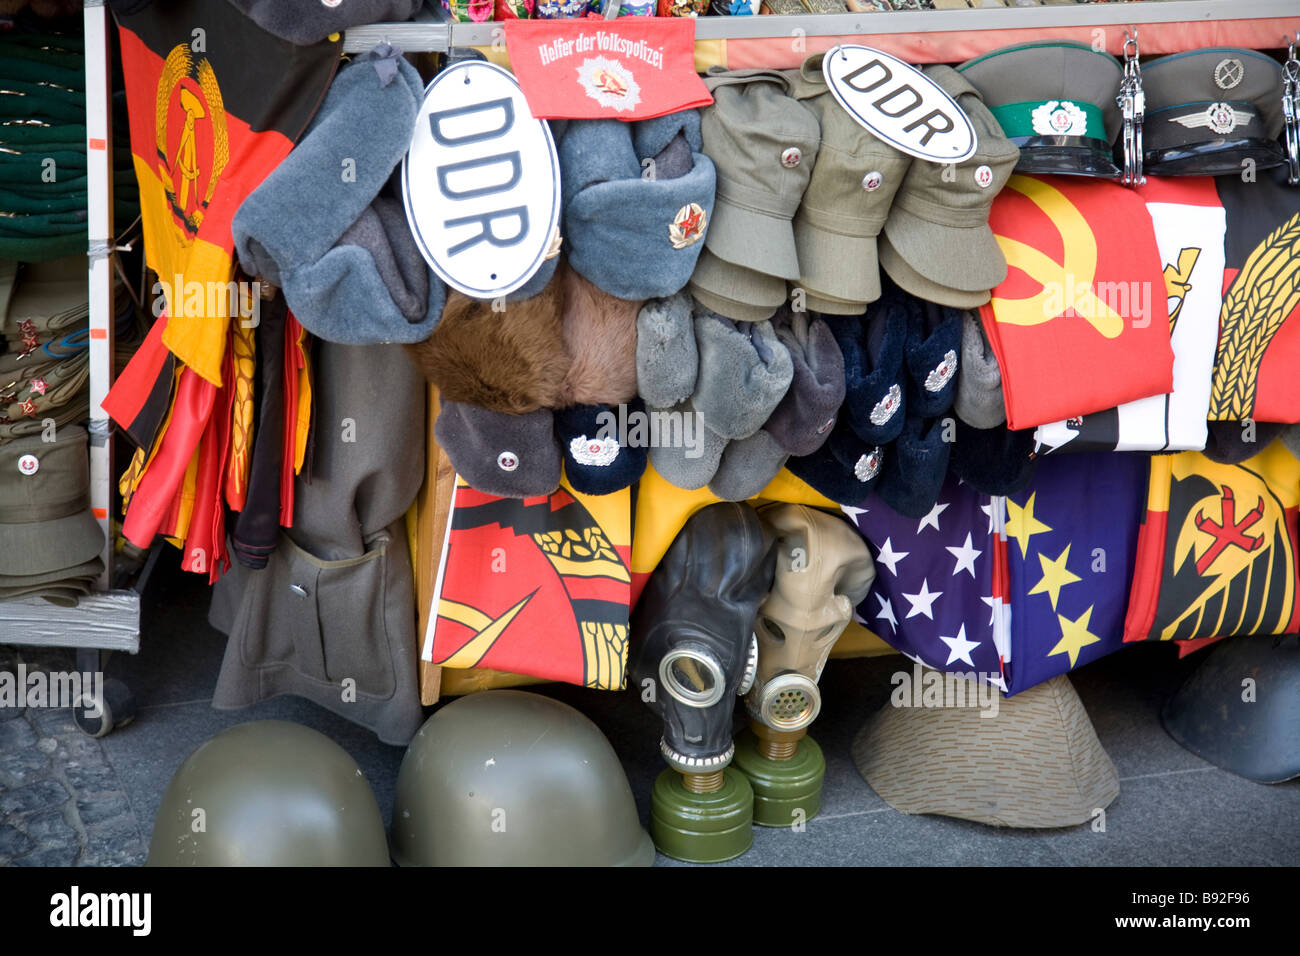 Cold war memorabilia is popular with tourists in Berlin Germany - Stock Image